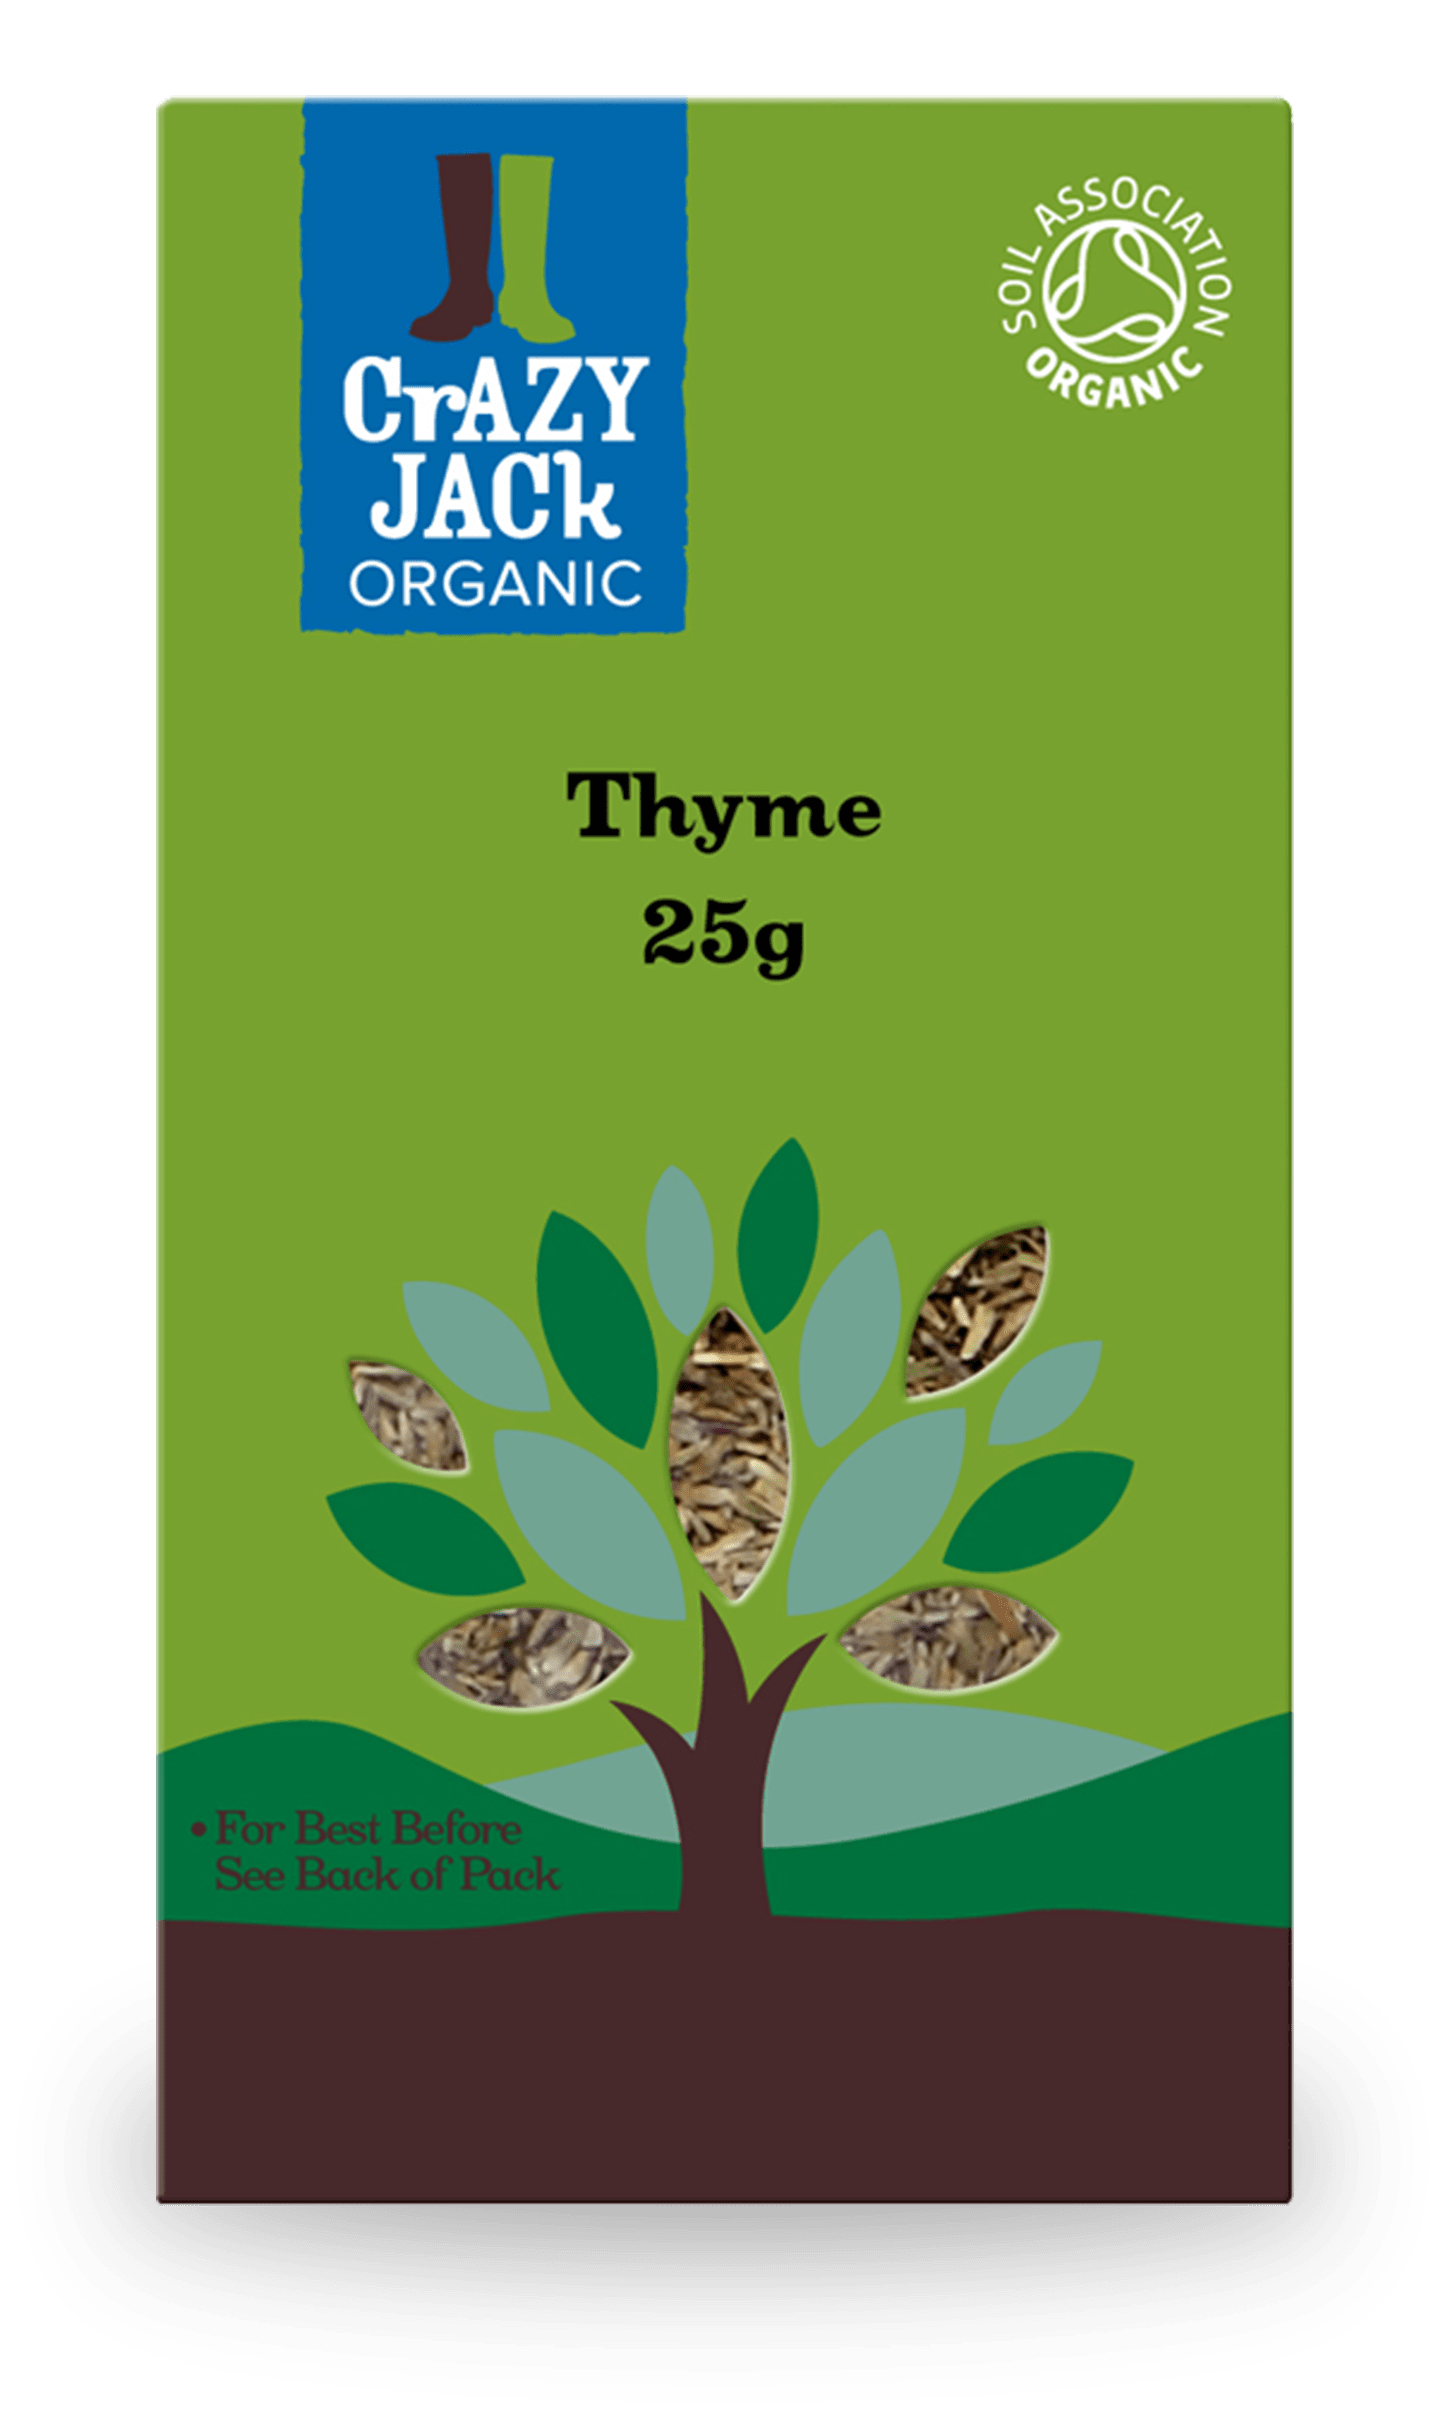 25g packet of organic thyme